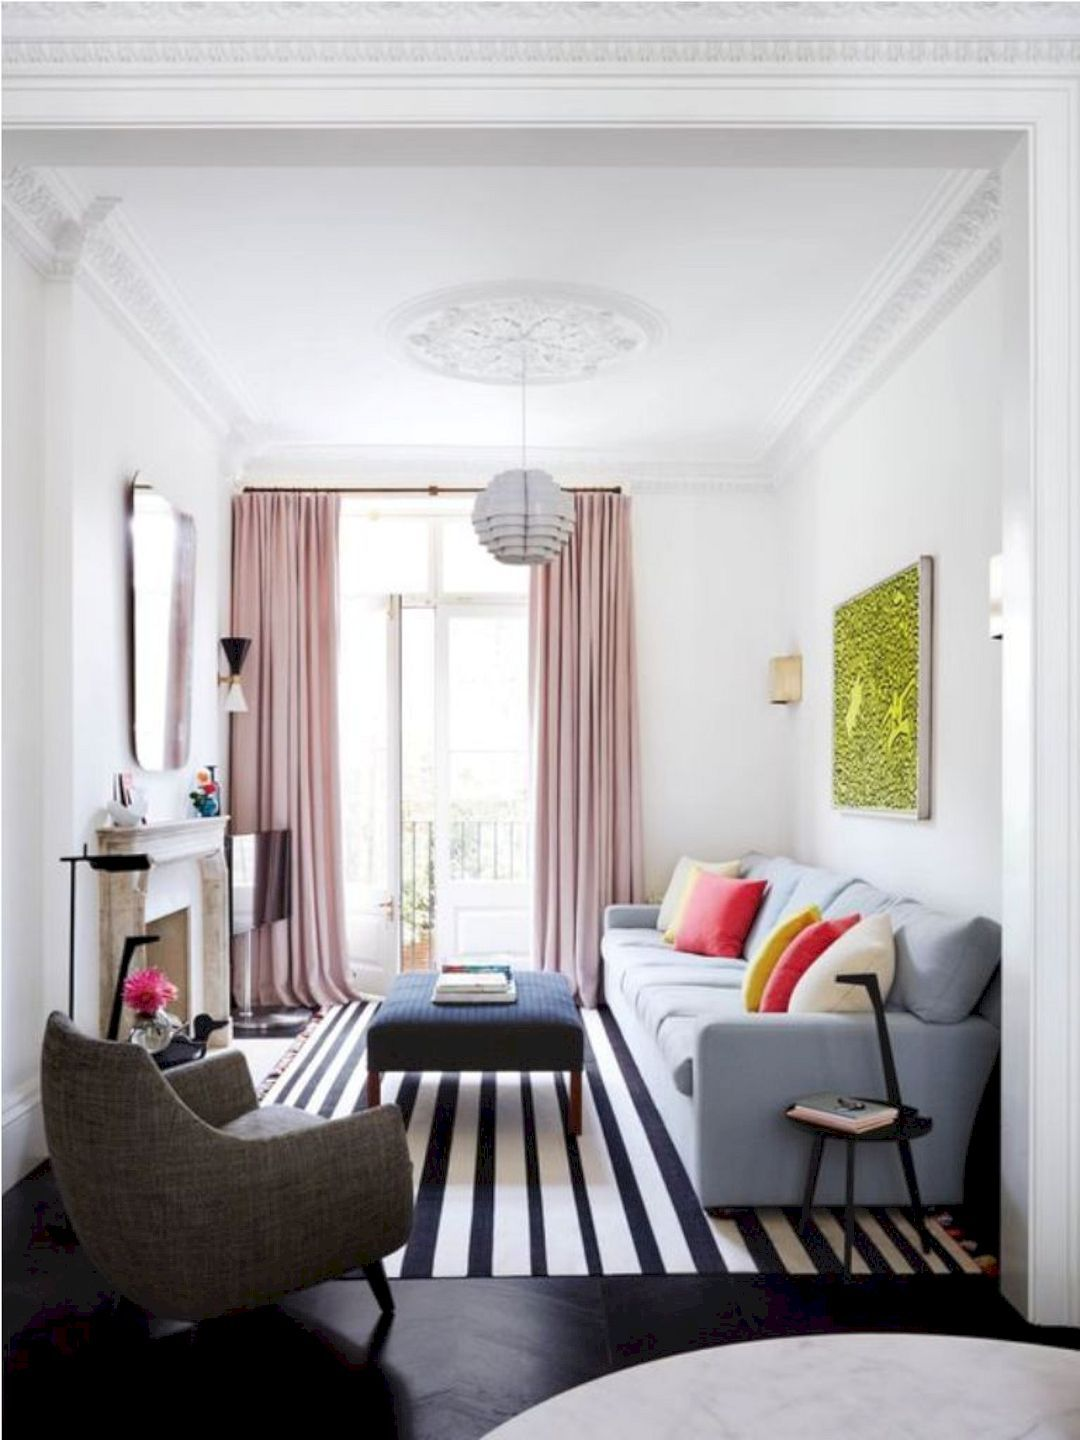 17 Small Townhouse Interior Design Ideas on architecture for small homes, kitchen for small homes, colors for small homes, storage for small homes, furniture for small homes, garden design for small homes, tips for small homes, paint for small homes, flooring for small homes, decorating for small homes, style for small homes, remodeling for small homes, interiors for small homes,